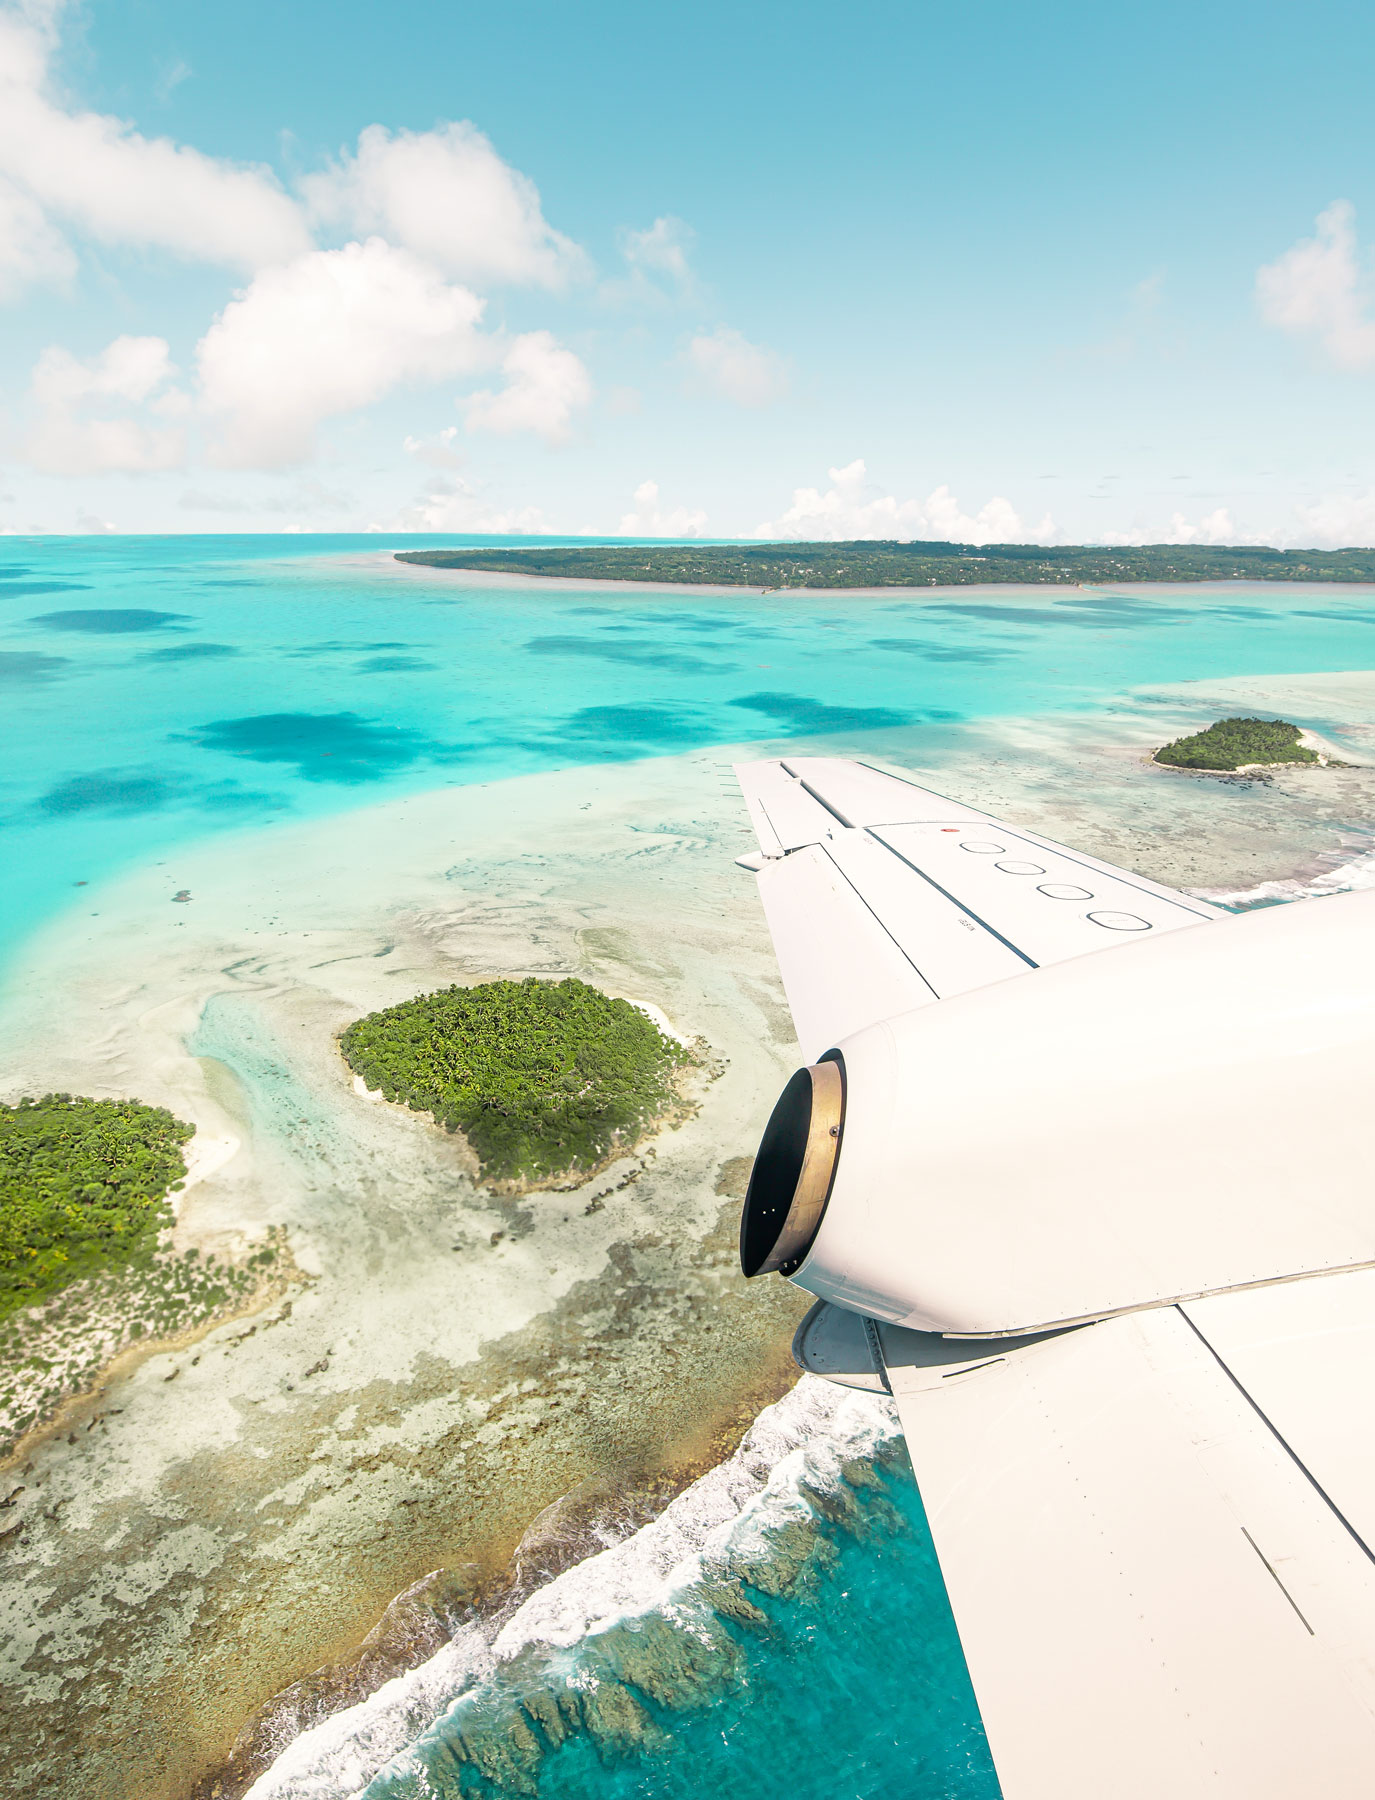 Cook Islands Travel Guide – Rarotonga – Aitutaki – Kelsey Heinrichs - @kelseyinlondon